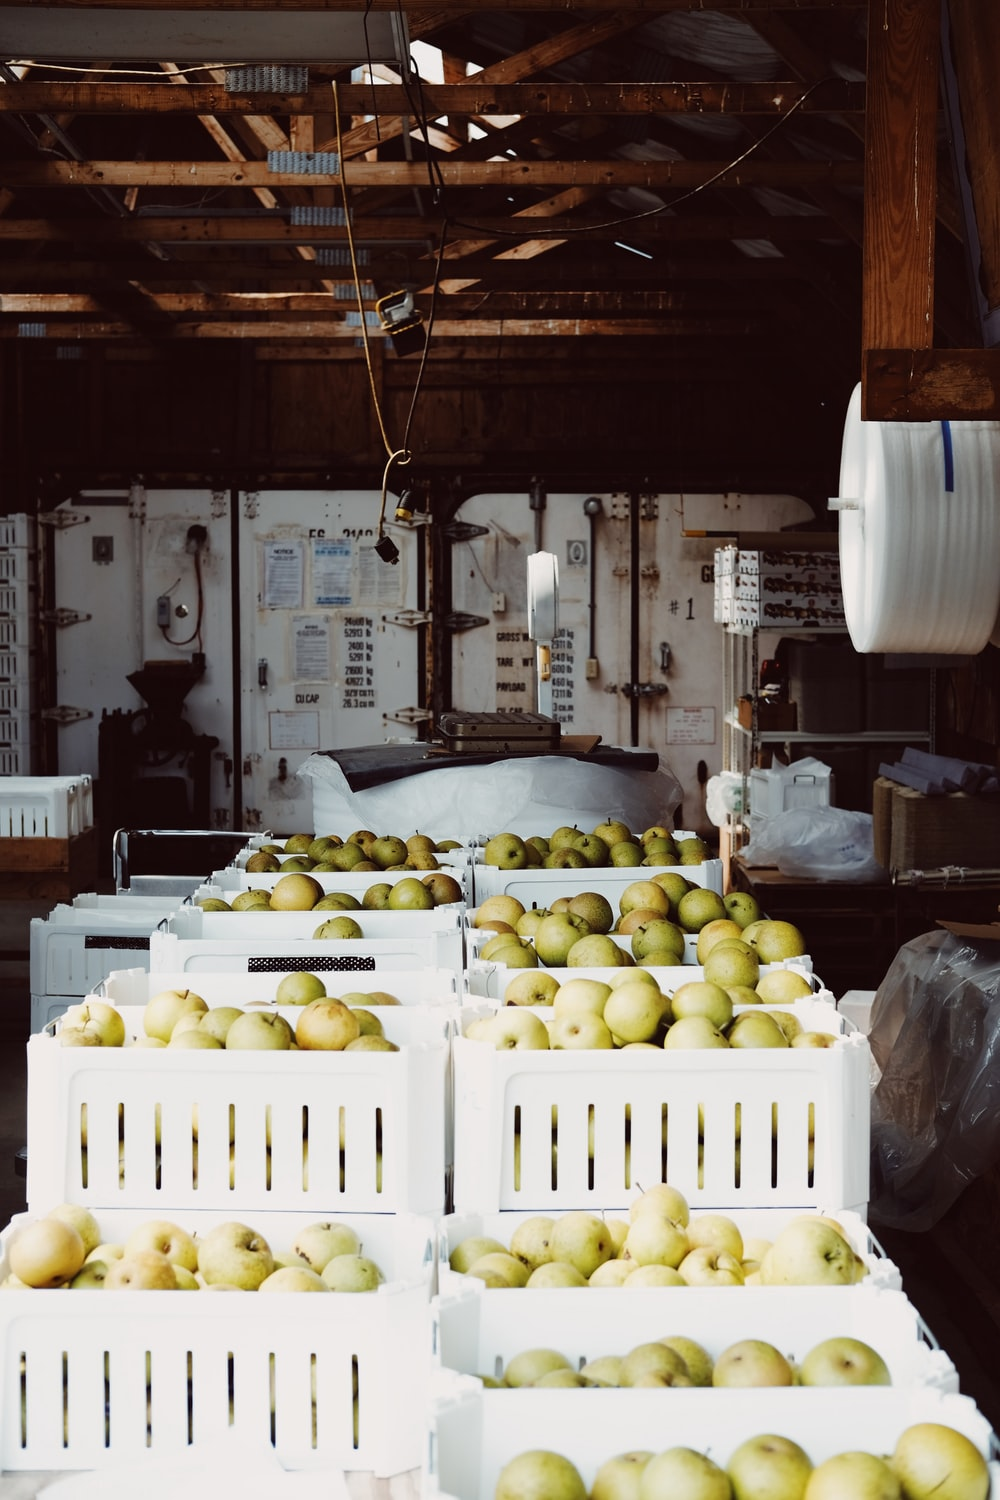 crate of apple lot